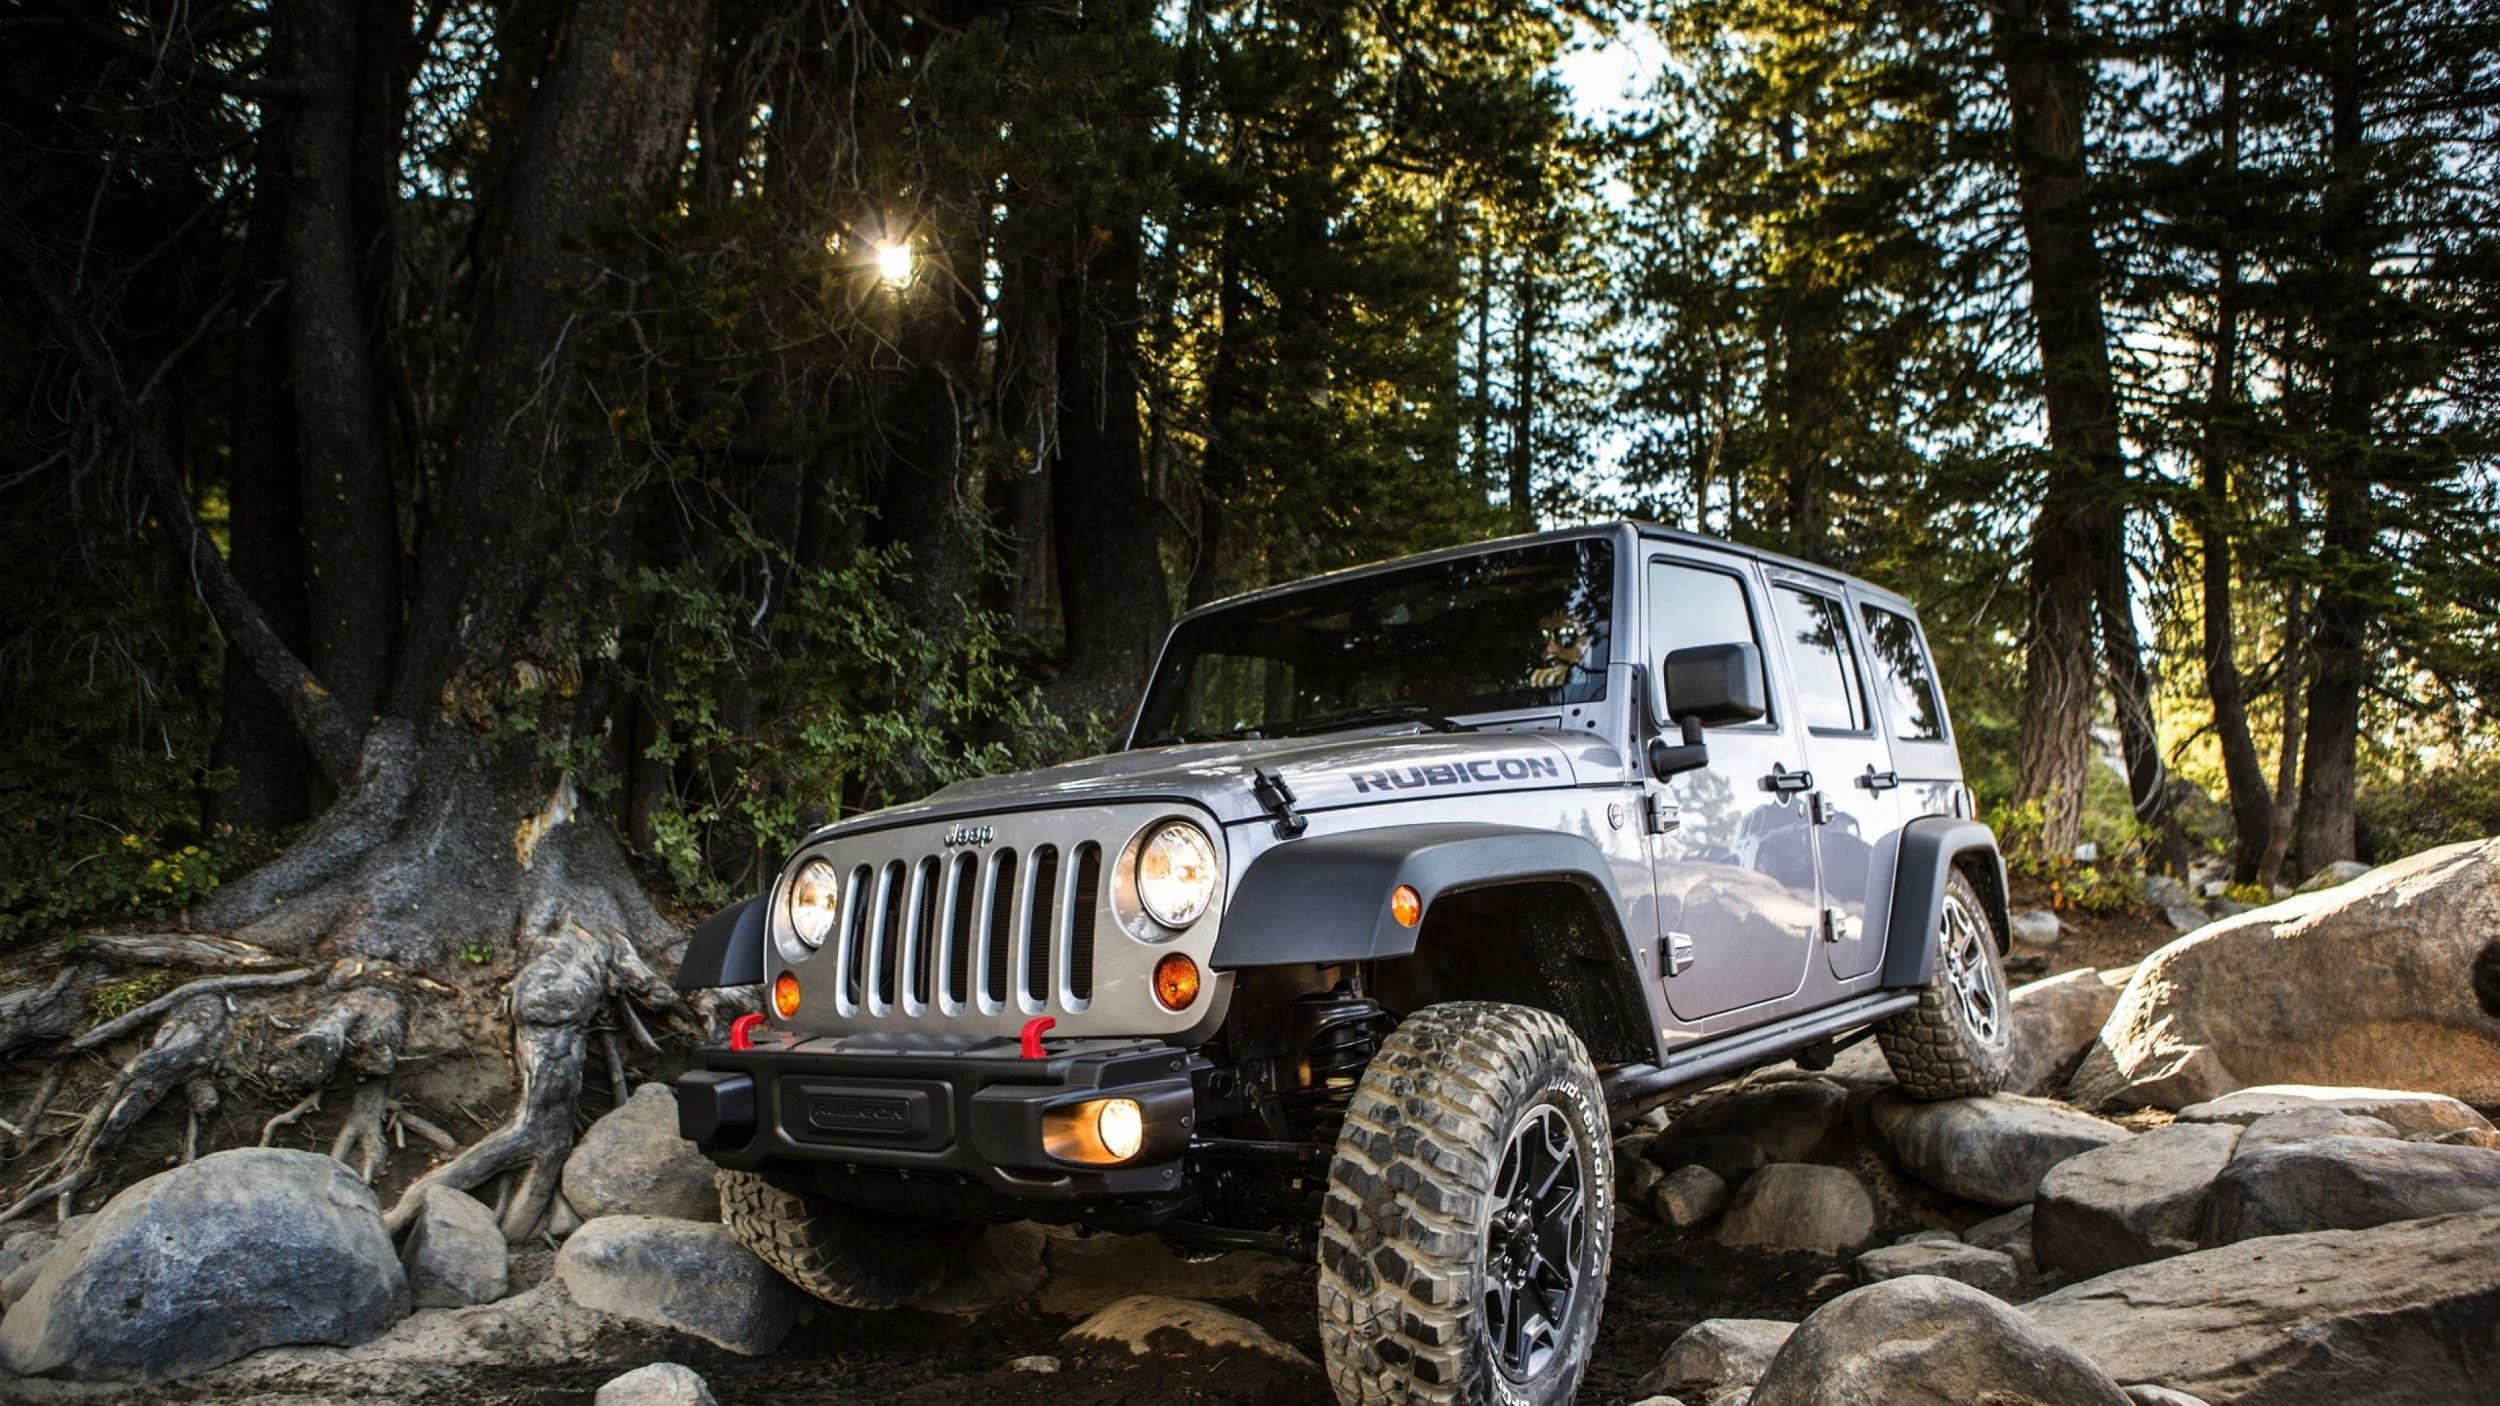 Res: 2500x1406, Top Collection of Jeep Wallpapers: Jeep Background 3840x2160 px – free  download